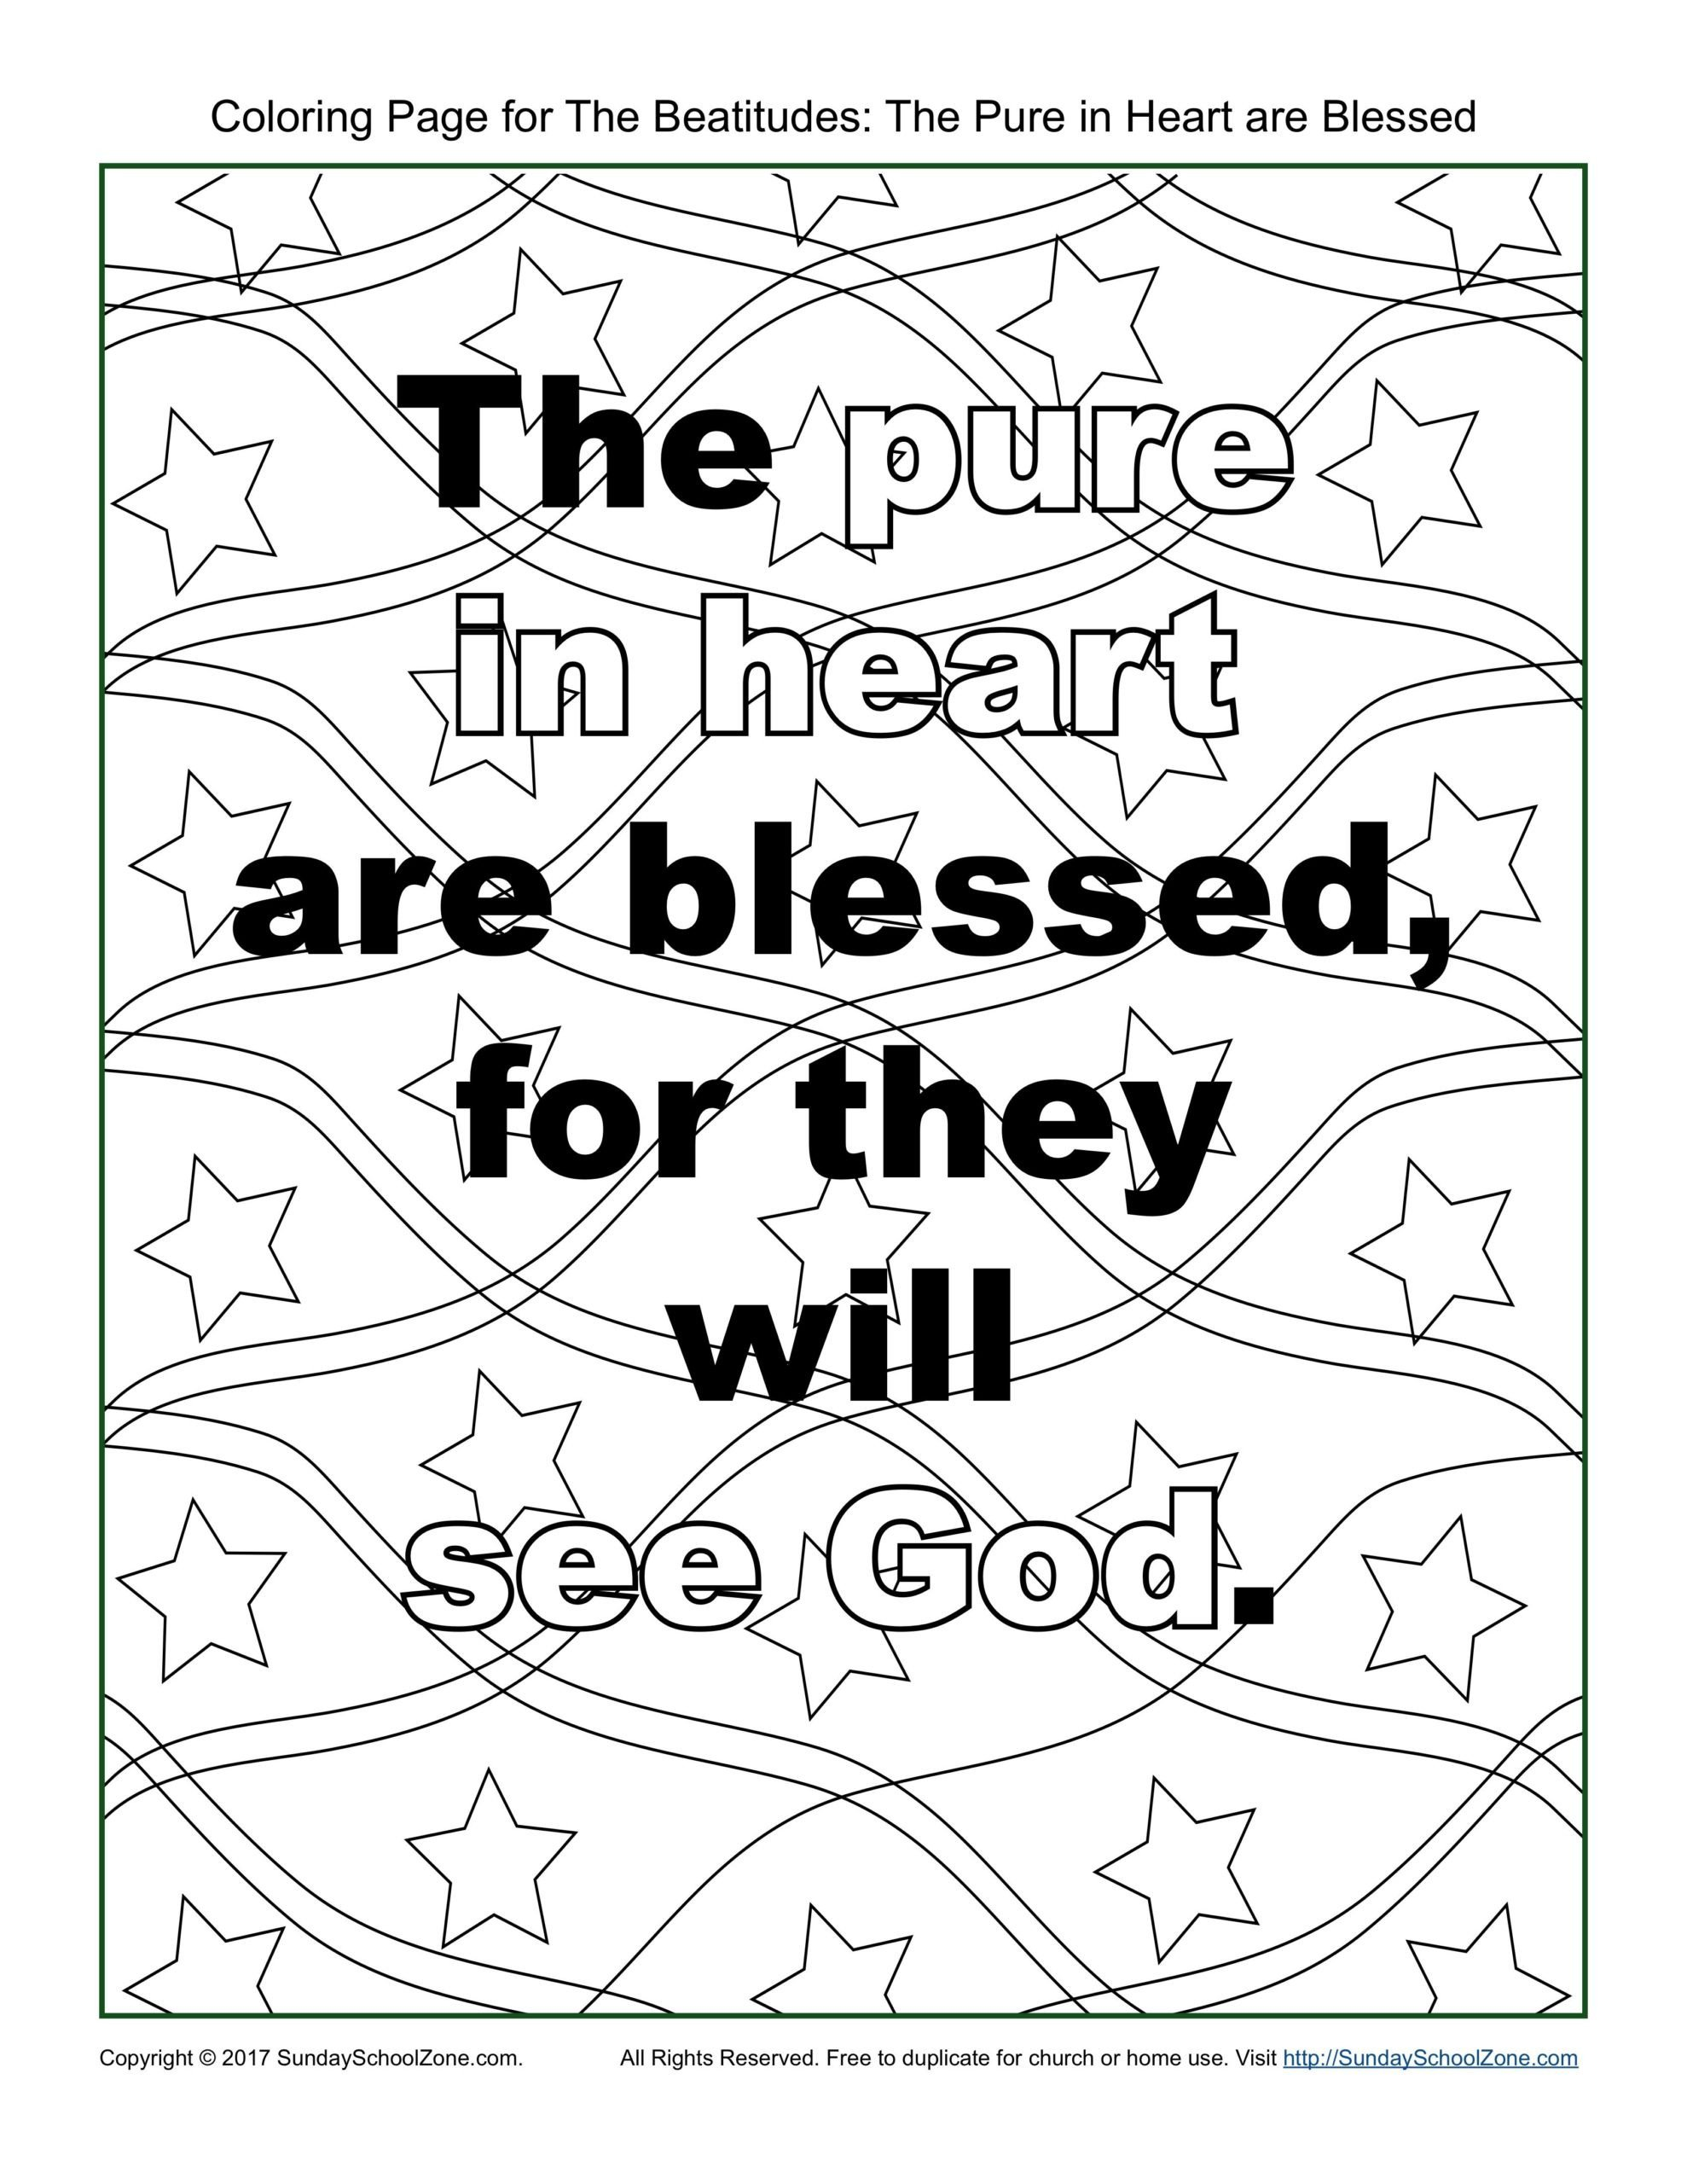 Timeline Worksheets for Middle School Pure In Heart Beatitudes Coloring Sunday School Zone Free